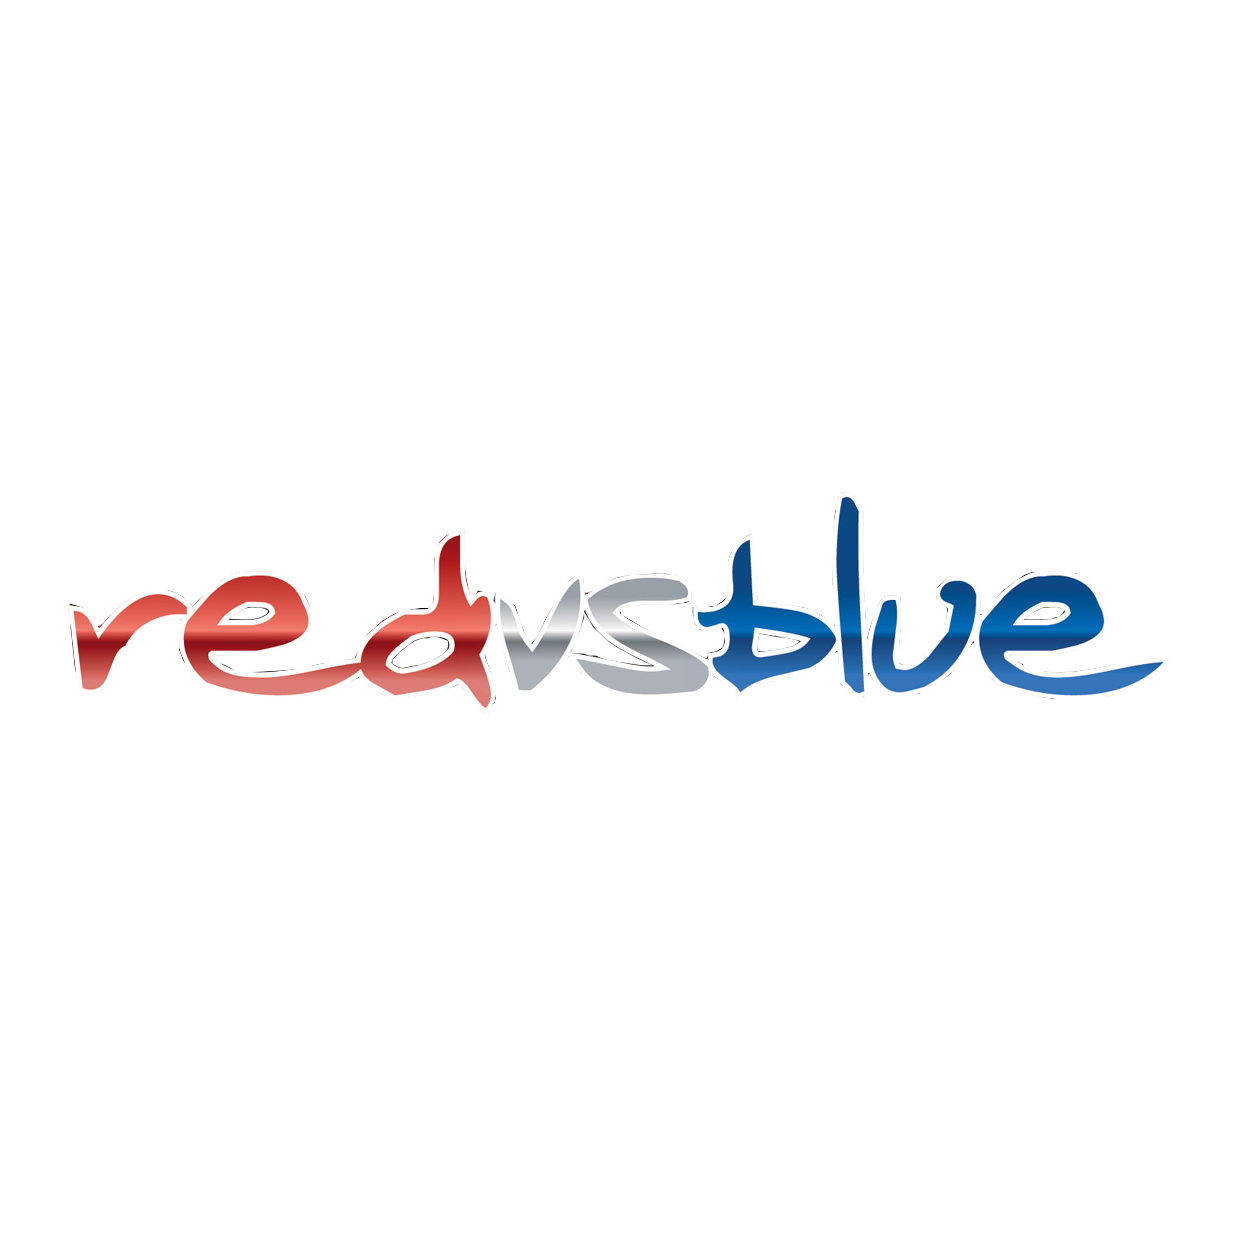 Red vs Blue  Rooster Teeth Square Logo